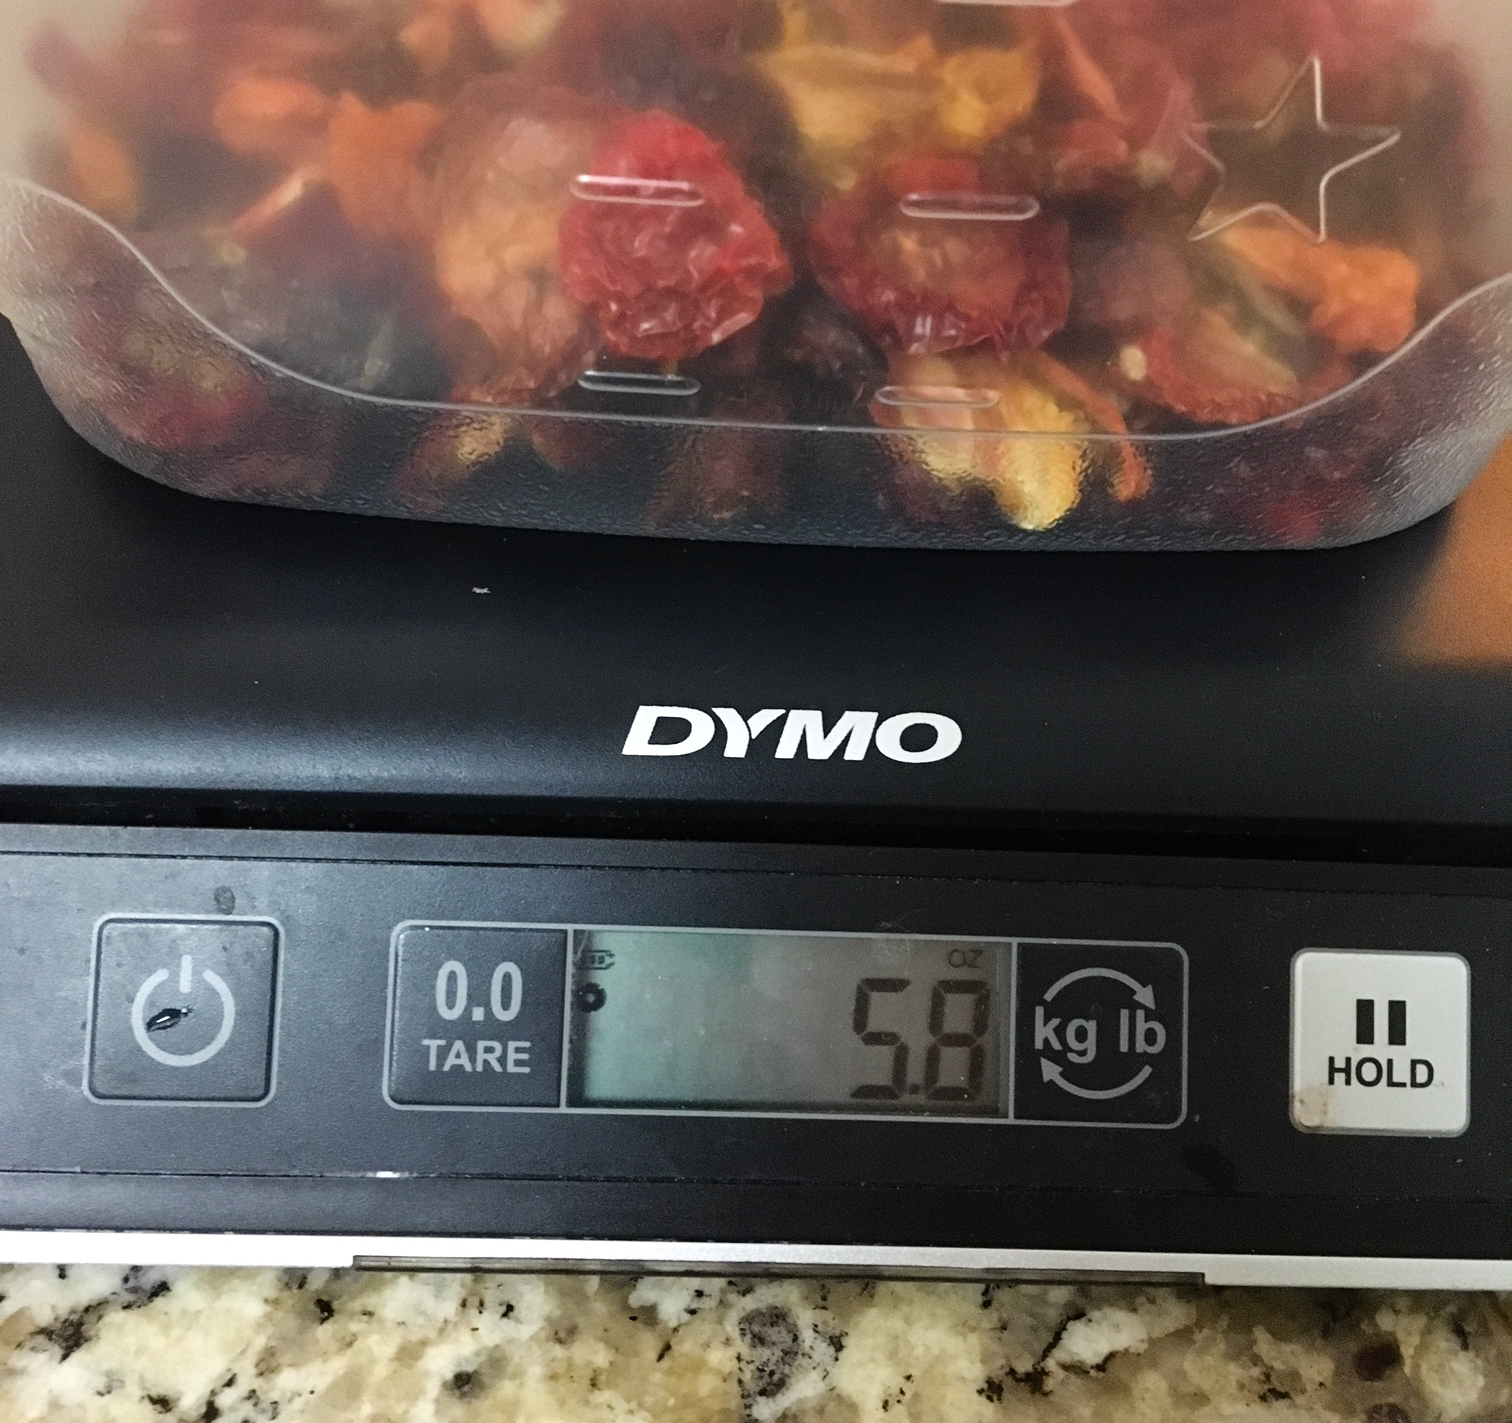 Hard to believe, but all those fresh tomatoes only yielded 5.8 ounces of dehydrated tomatoes.